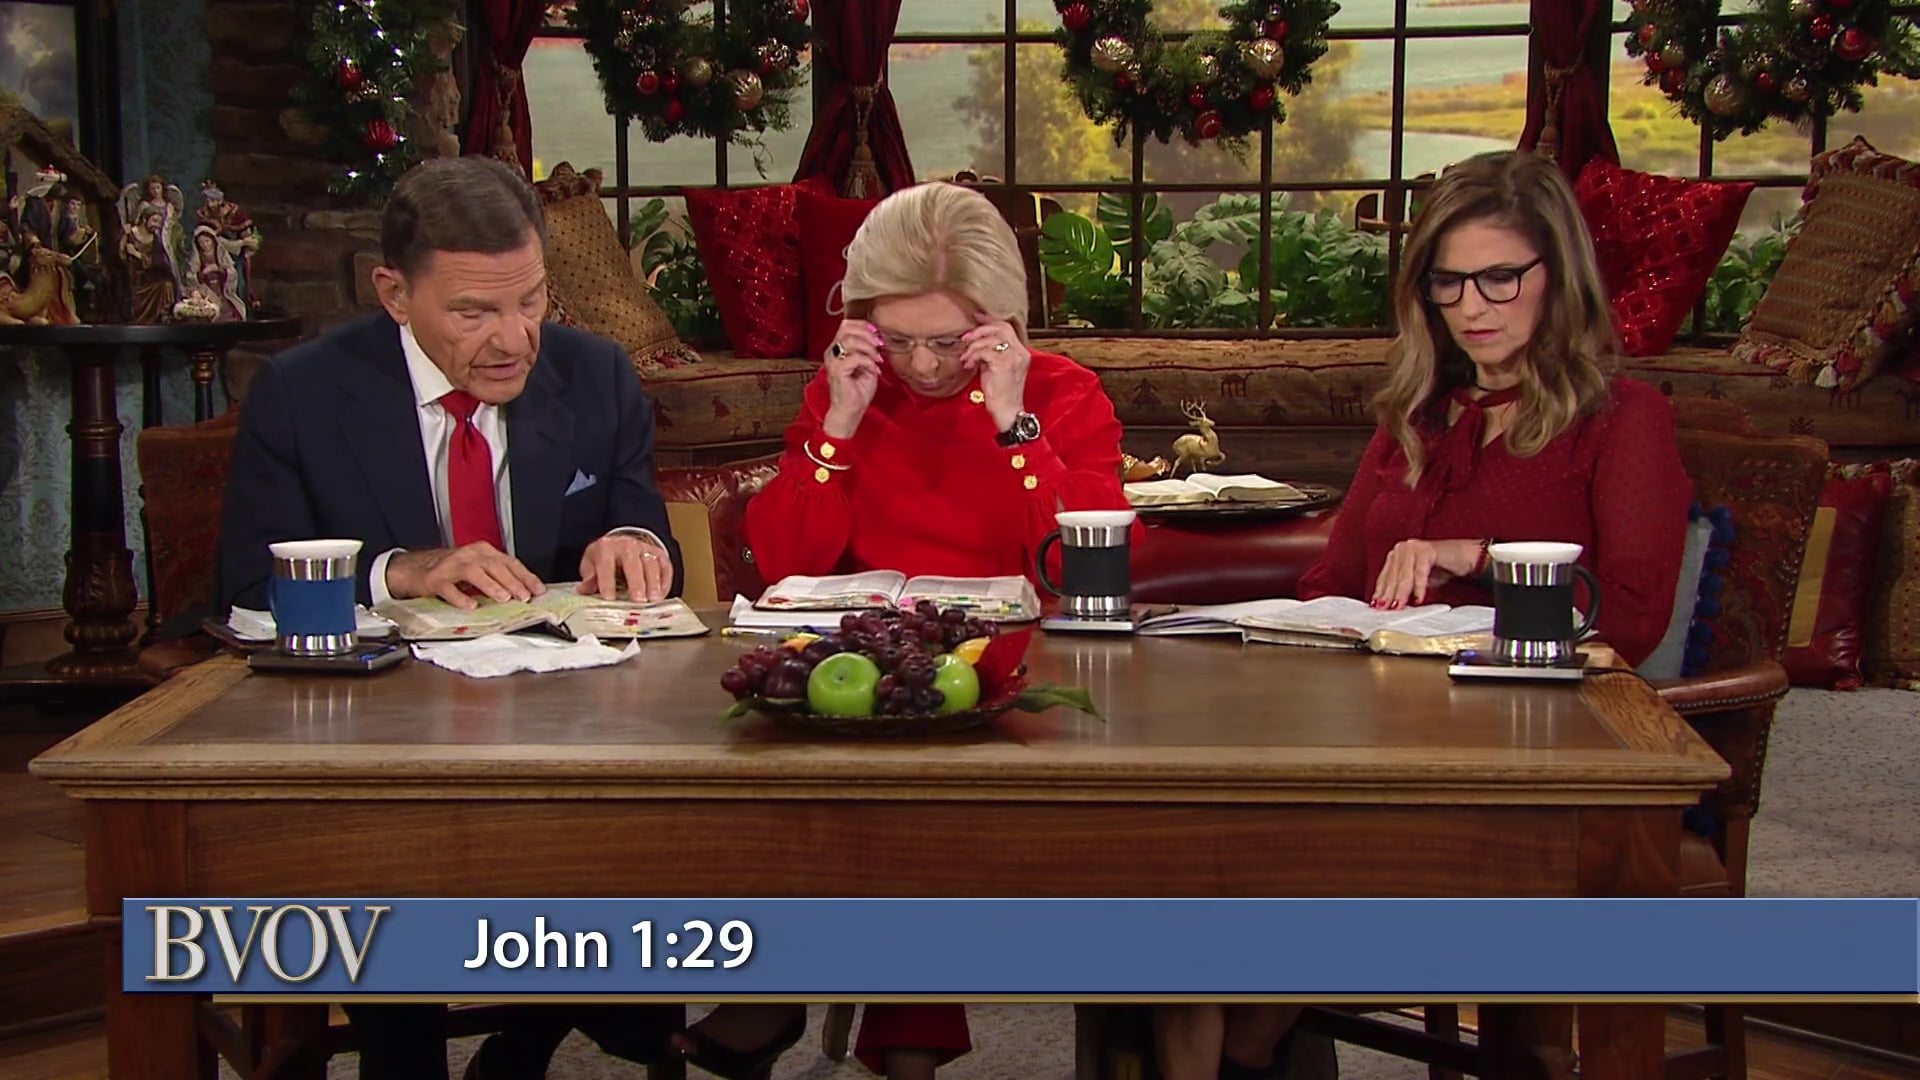 The birth of Jesus was supernatural, but leading up to it required countless other miracles! Join Kenneth and Gloria Copeland with Kellie Copeland on Believer's Voice of Victory as they pull the curtain back on some of the miracles required for Jesus' birth to take place as it had been prophesied. Learn what type of faith each figure had to have to bring their part to pass, and how you can have the same faith in your life!